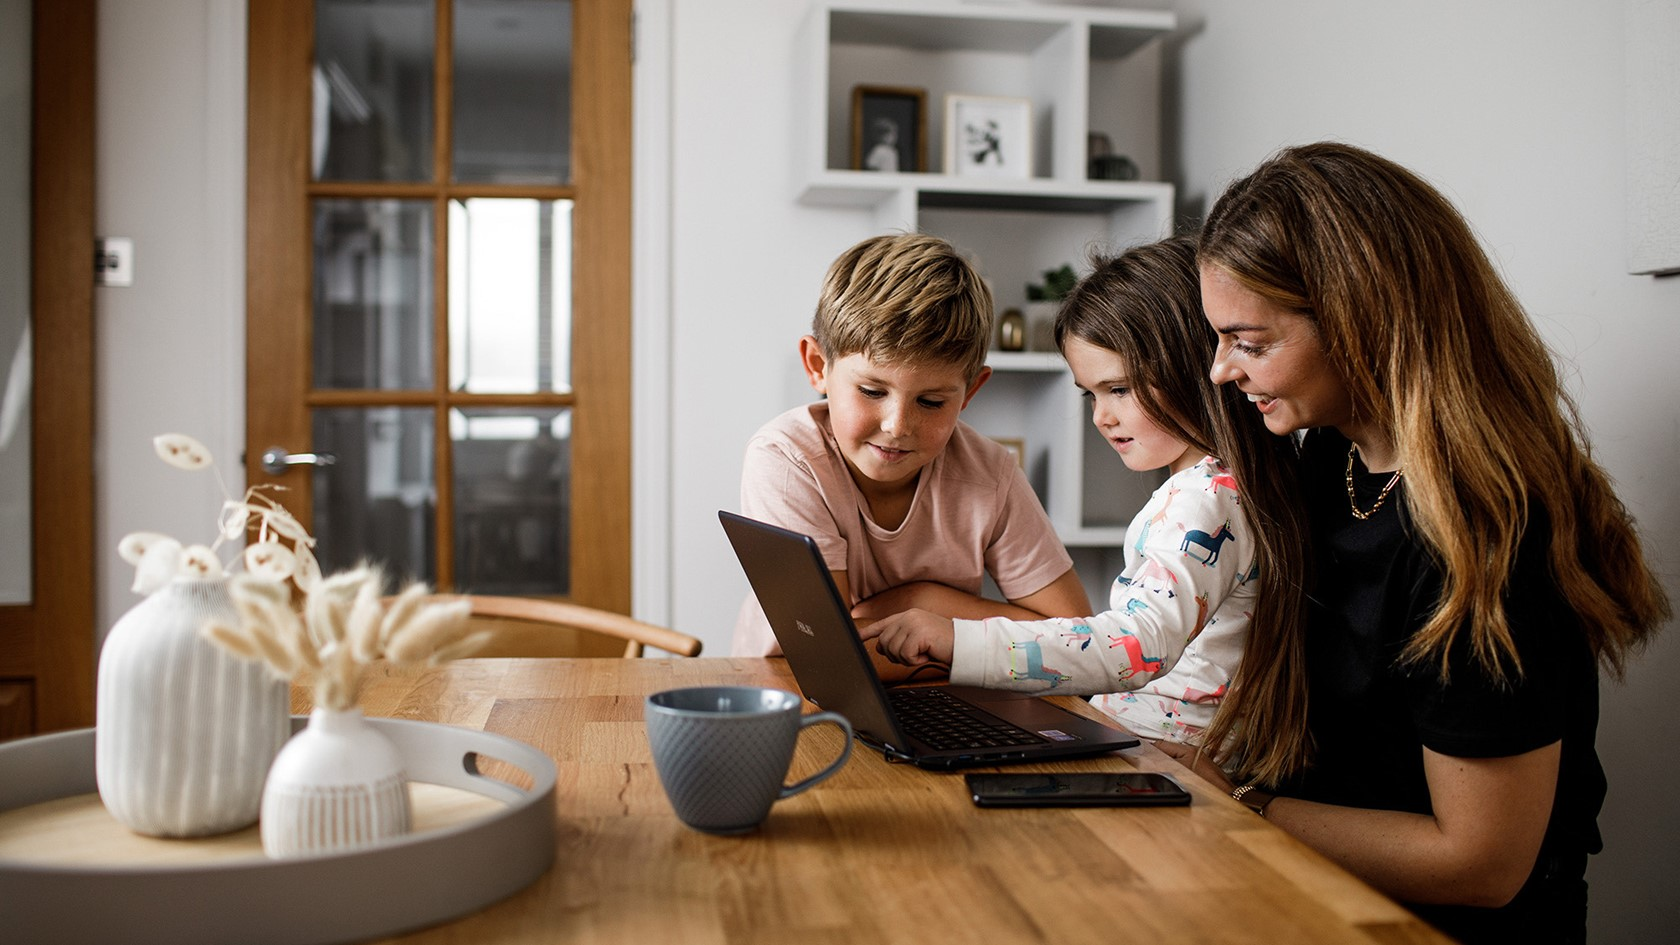 A mother and her children sat at the kitchen table enjoying something on a laptop computer.